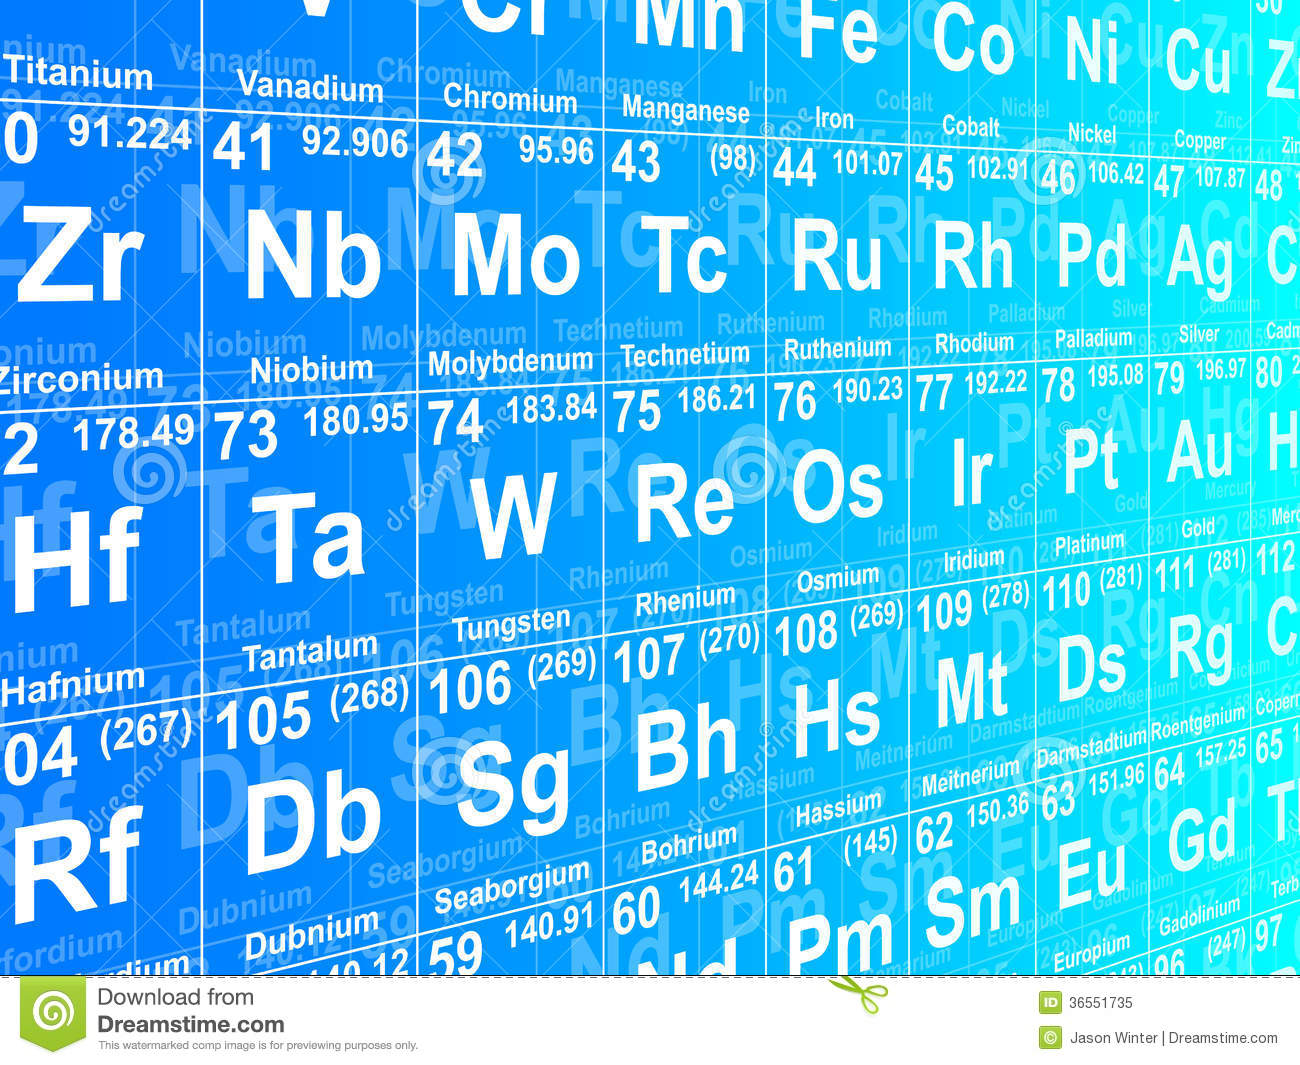 Periodic table background royalty free stock photo image 36551735 royalty free stock photo download periodic table gamestrikefo Choice Image